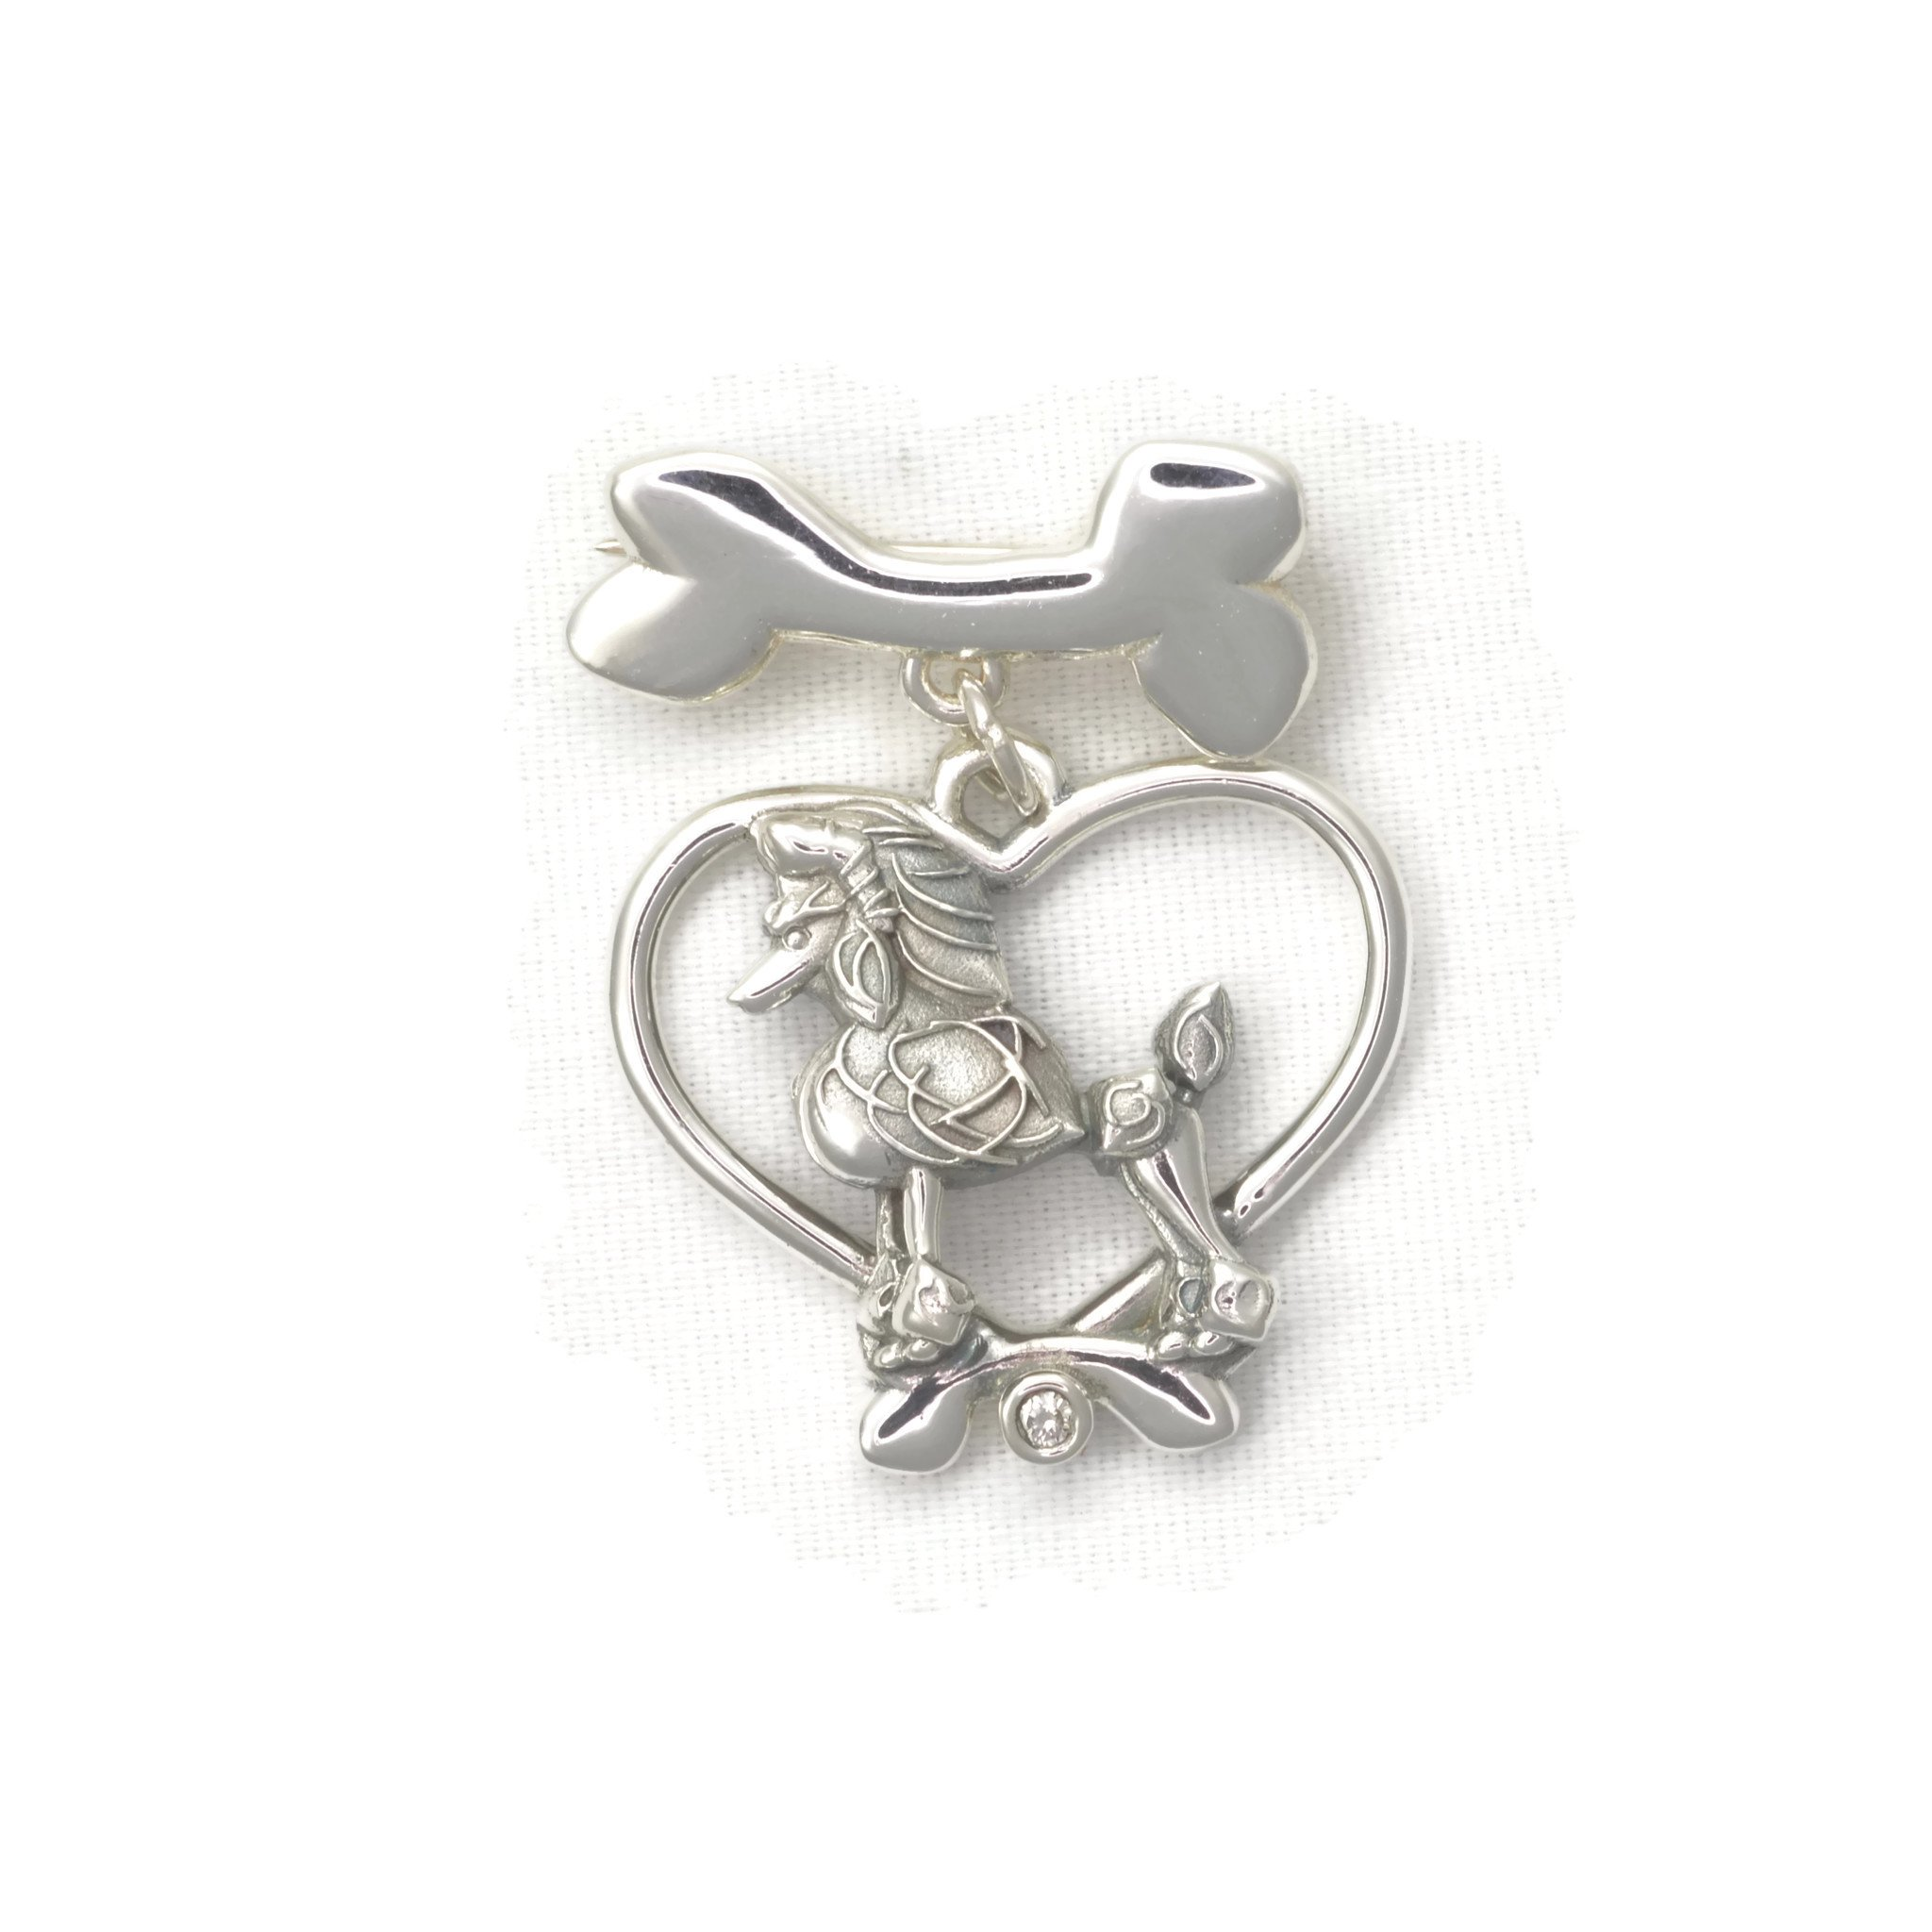 Sterling Silver Poodle Pin - Diamond Brooch - Dog Bone Pin by Donna Pizarro fr her Animal Whimsey Collection of Fine Poodle Jewelry